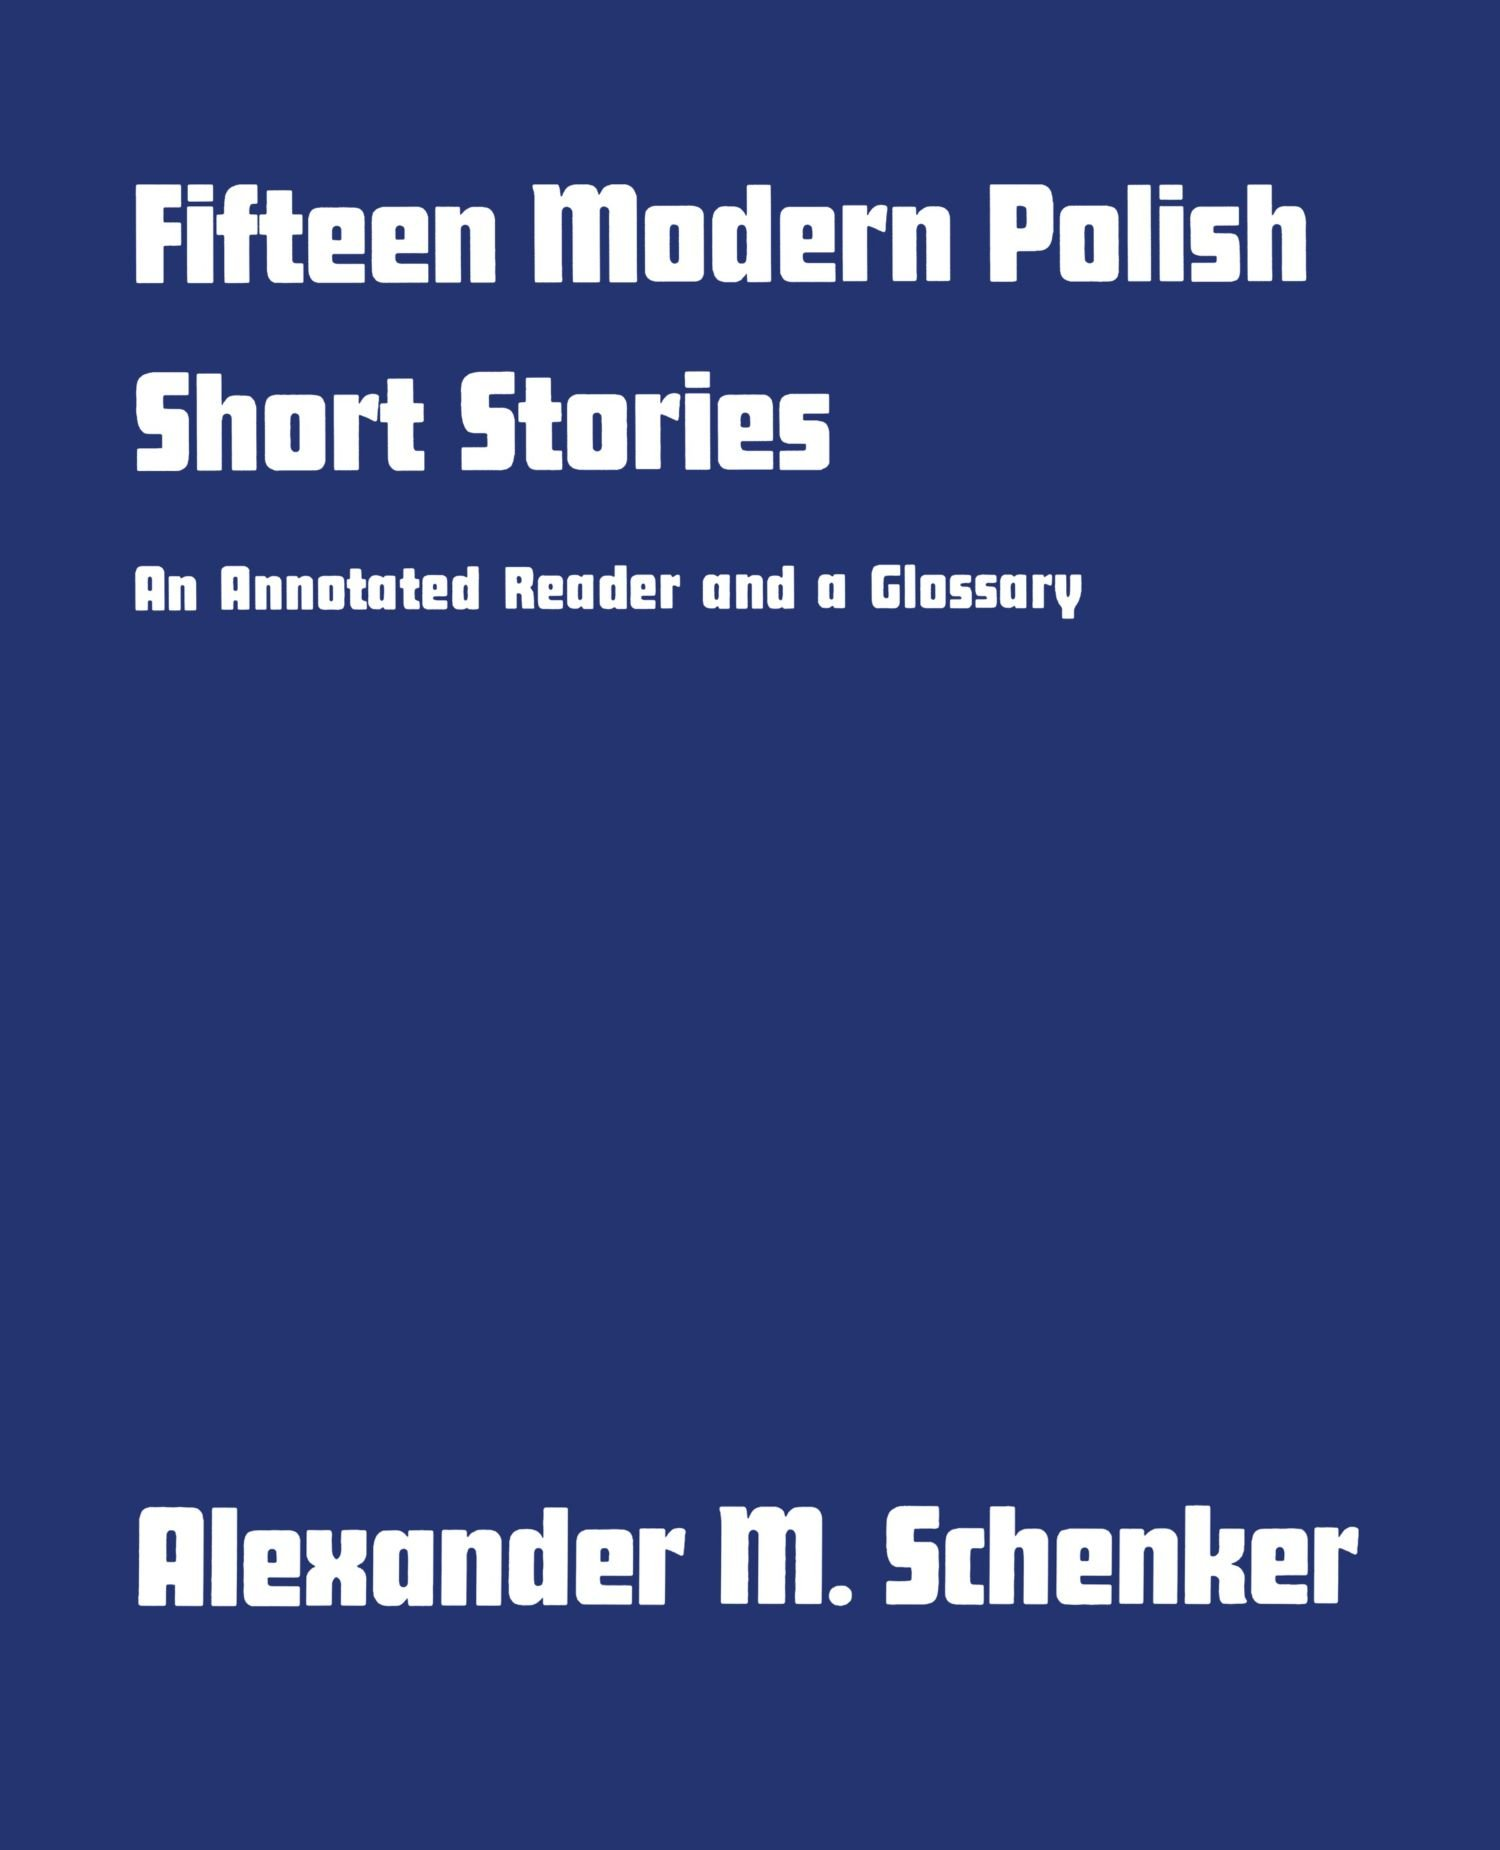 Fifteen Modern Polish Short Stories: An Annotated Reader and a Glossary (Yale Language Series) by Polish Books